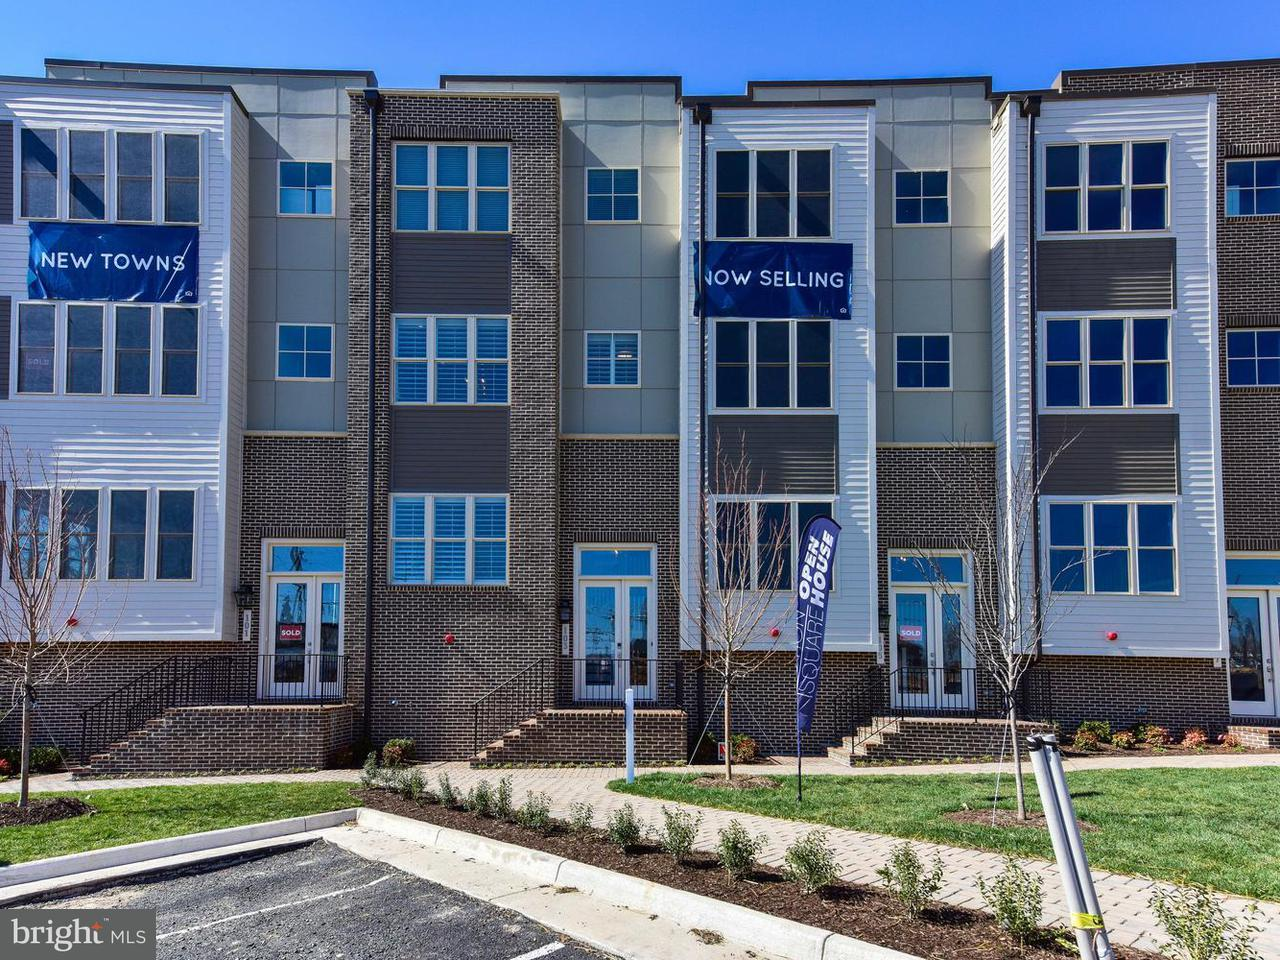 Townhouse for Sale at 711 MONROE 711 MONROE Herndon, Virginia 20170 United States